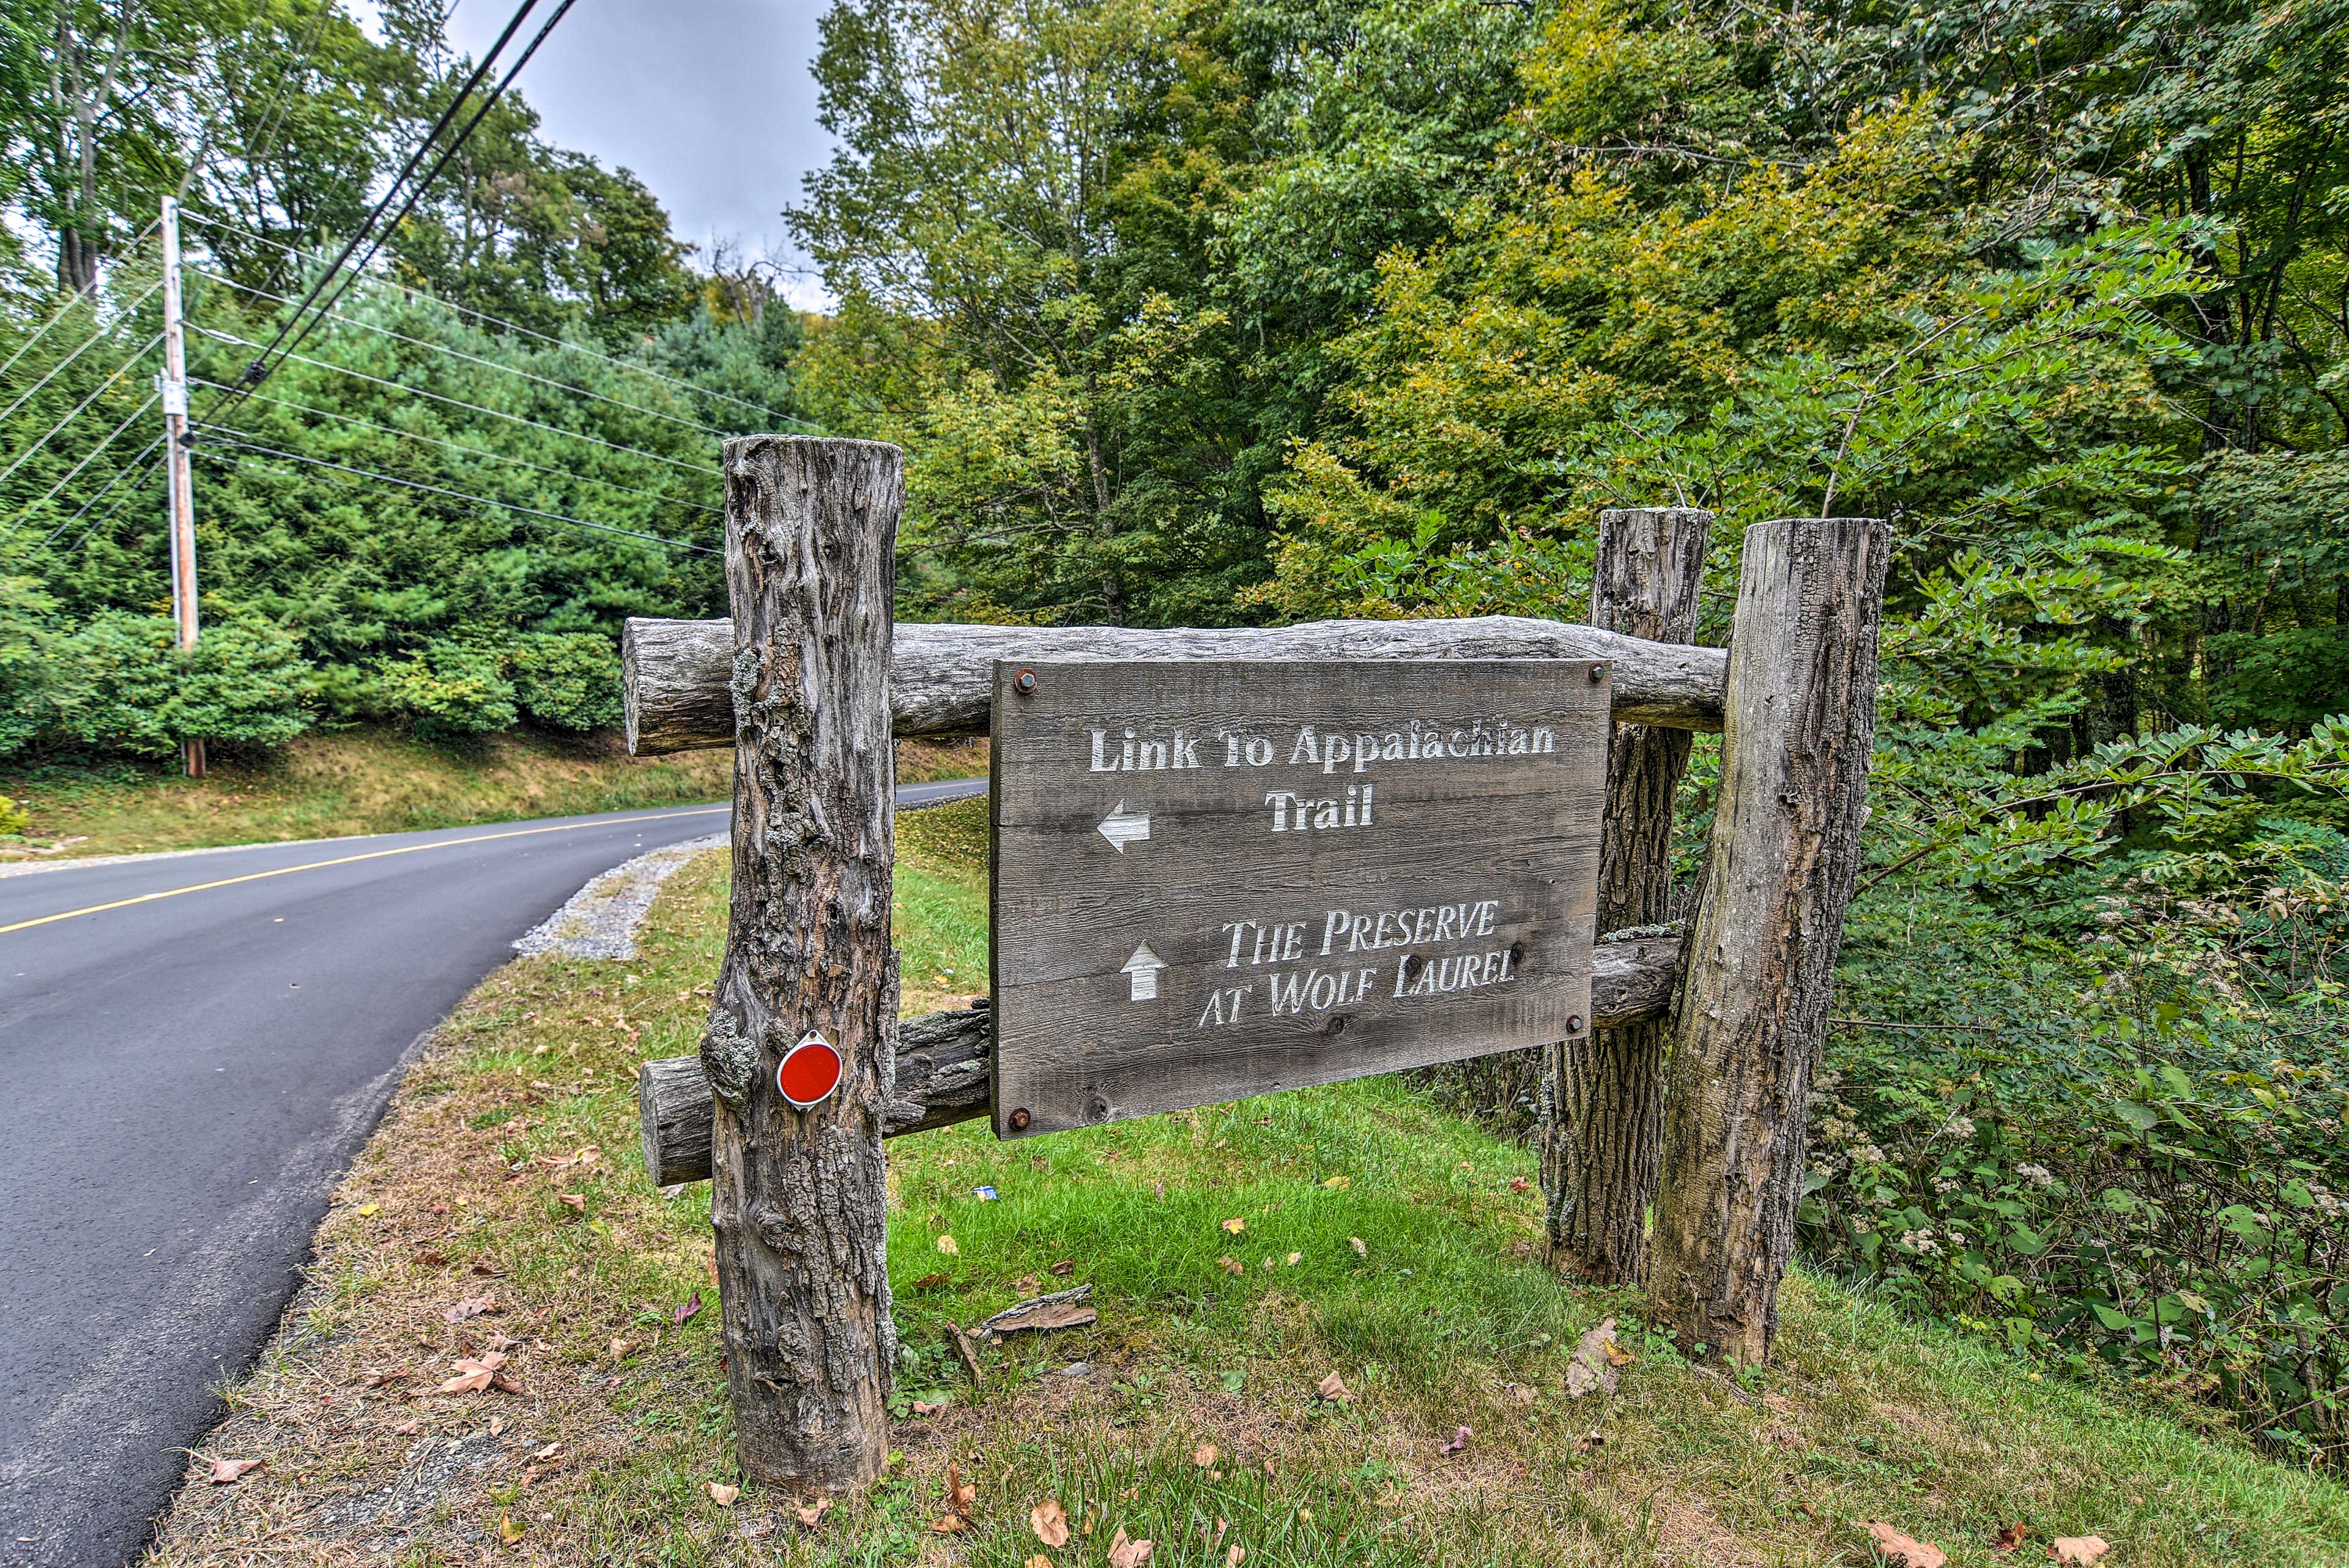 Take a quick drive to one of the 3 Appalachian Trail entrances!